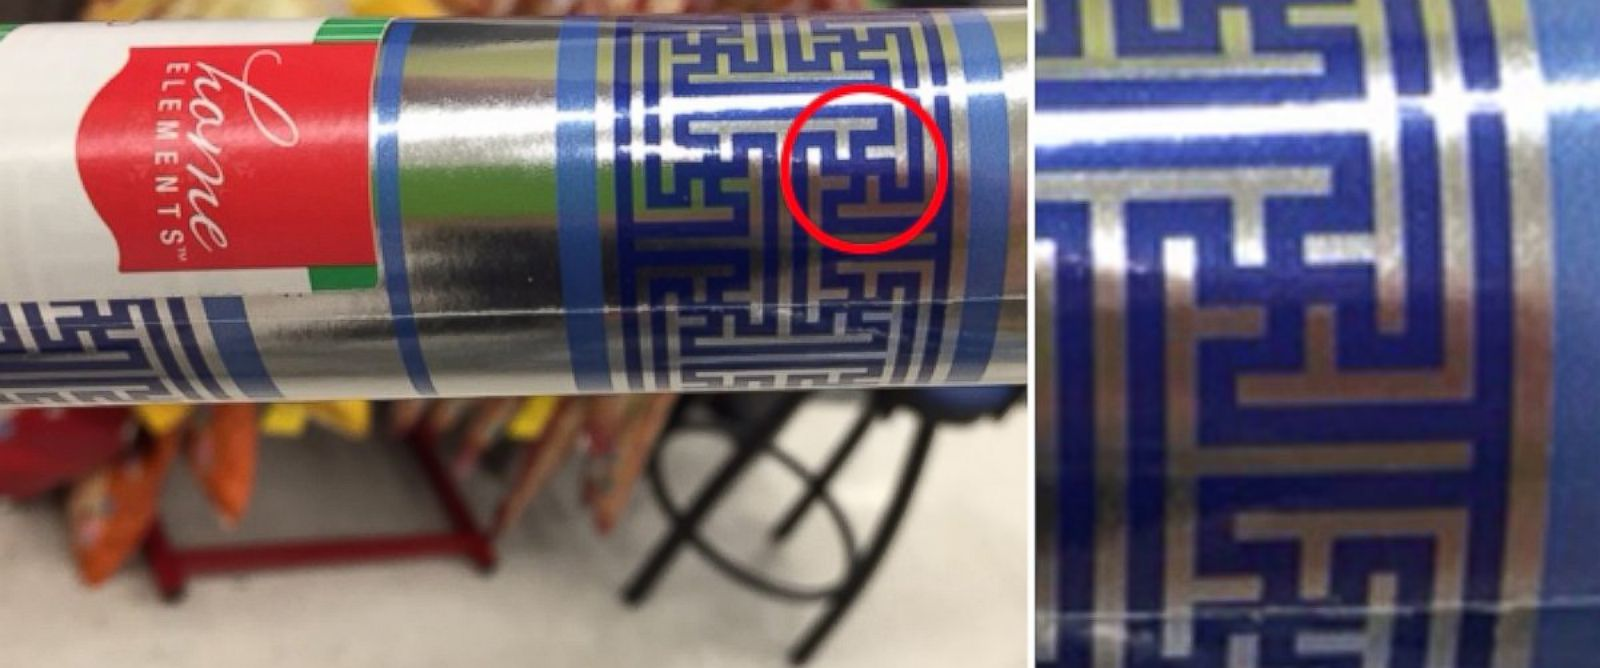 "PHOTO: Cheryl Shapiro, a former interior designer was shocked when she noticed the tiny swastikas. ""I didnt even have to take a second look. Those swastikas jumped out at me."""